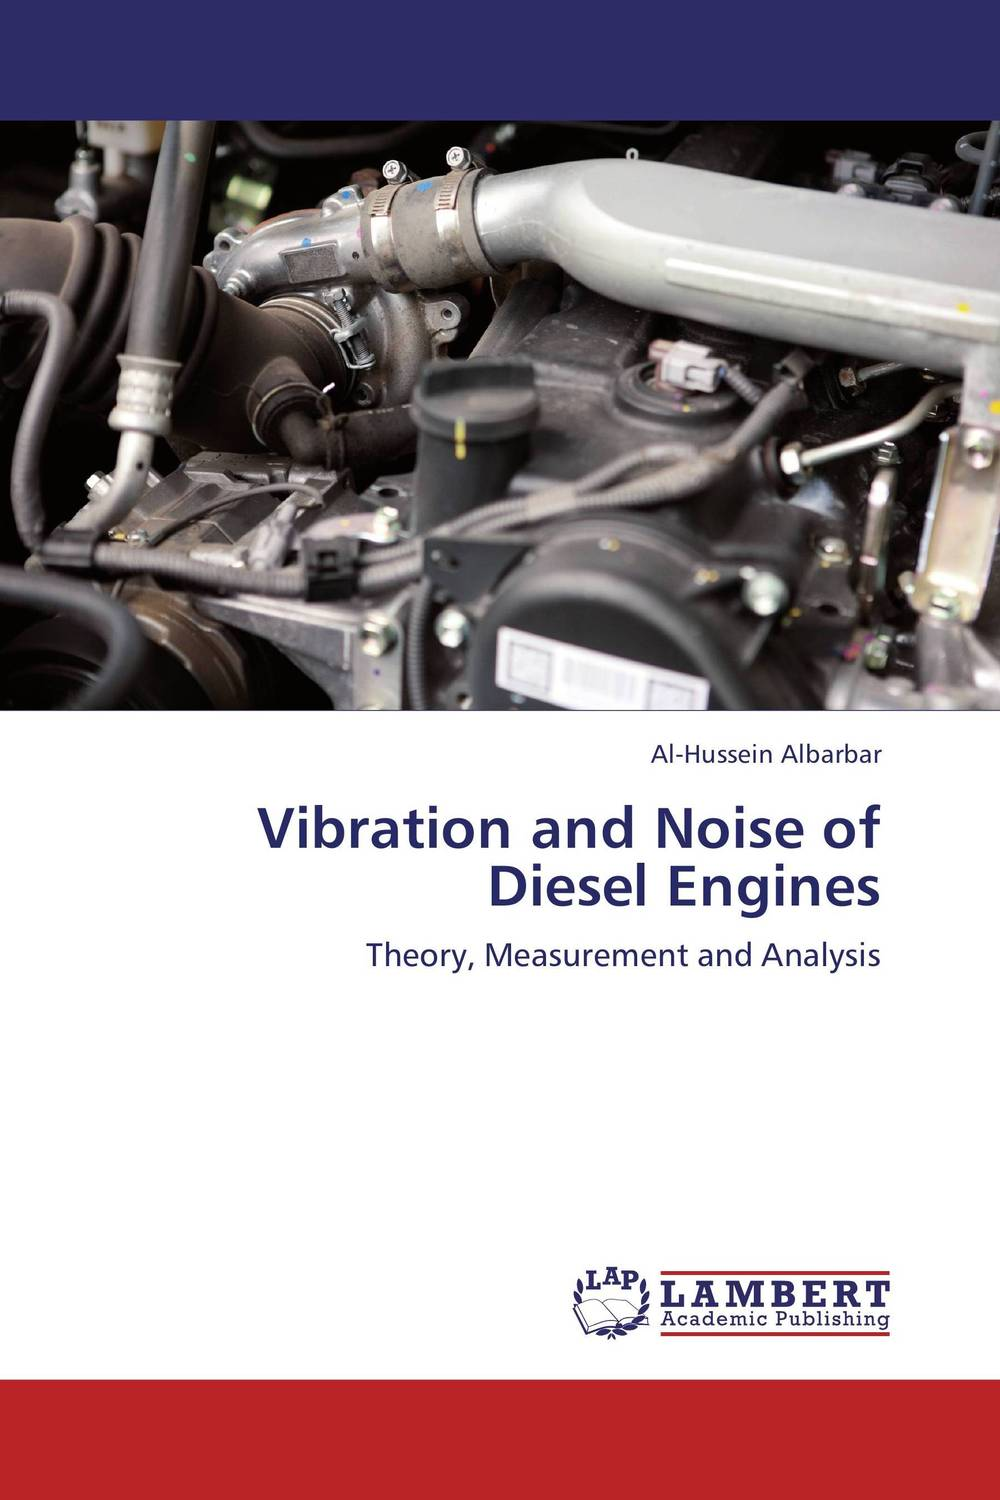 Vibration and Noise of Diesel Engines купить